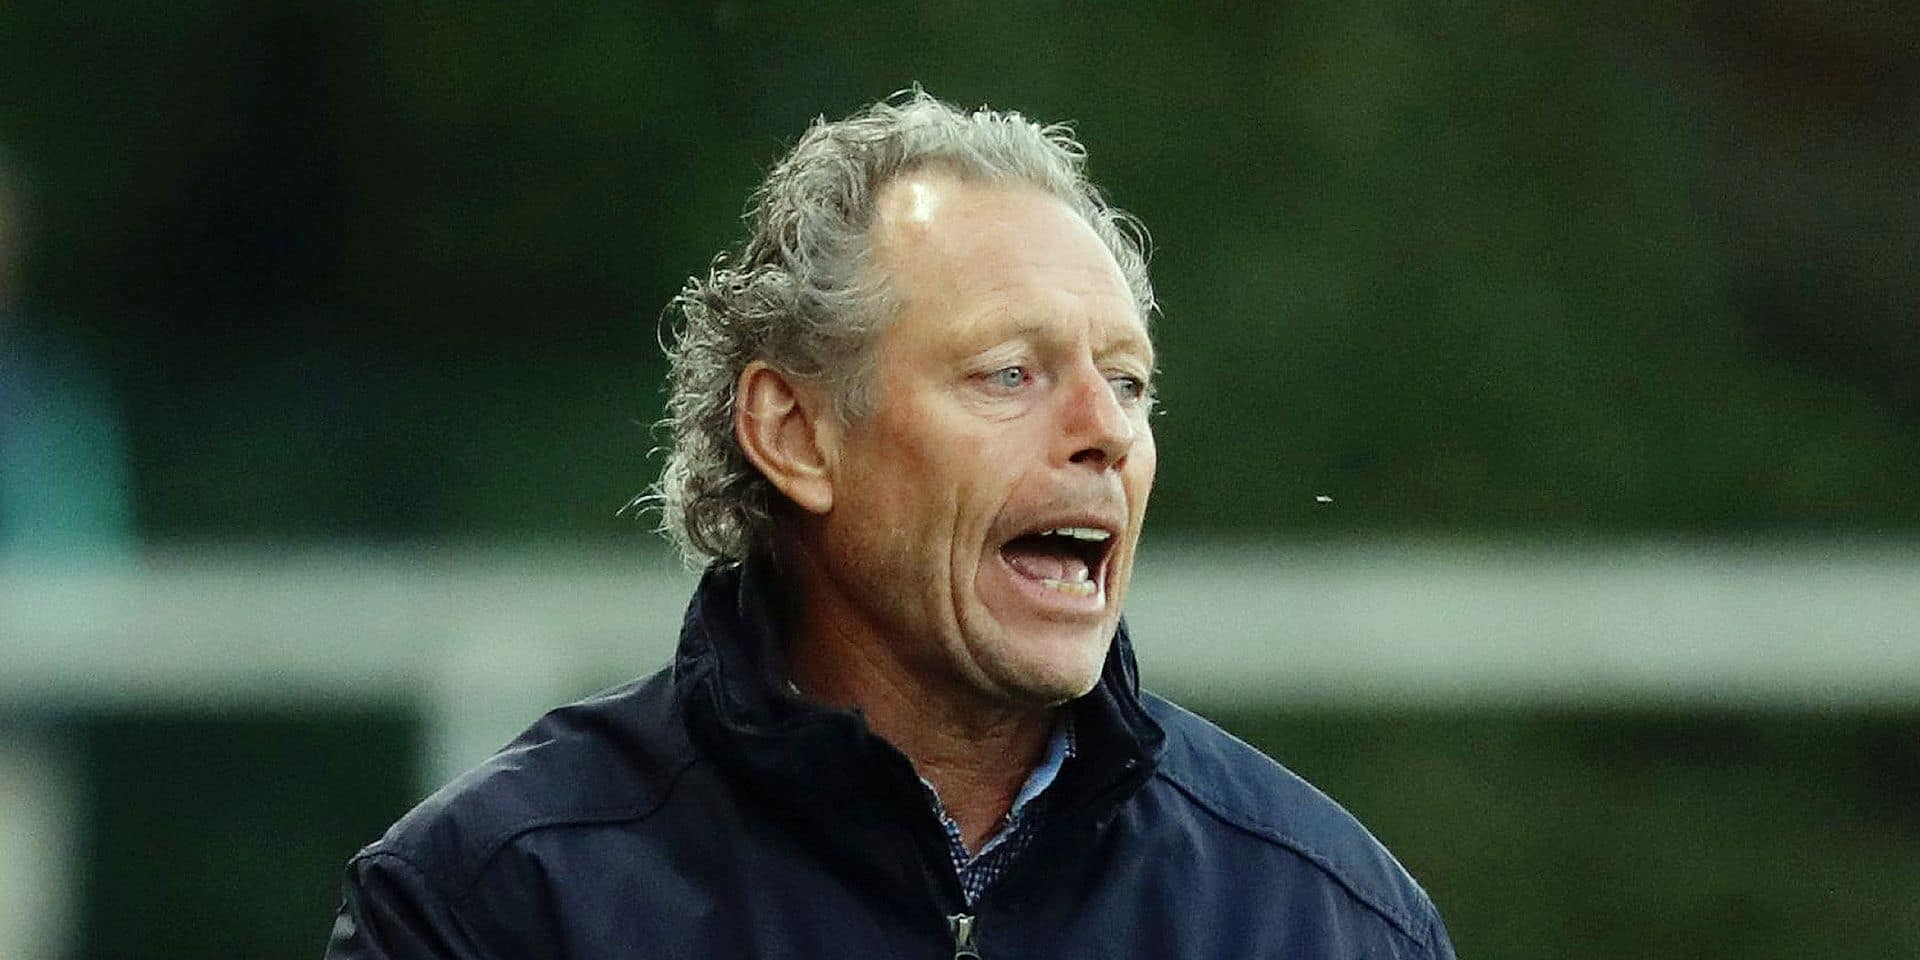 Standard's head coach Michel Preud'homme pictured during a soccer game between Royal Excel Mouscron and Standard de Liege, Saturday 20 October 2018 in Mouscron, on the eleventh day of the 'Jupiler Pro League' Belgian soccer championship season 2018-2019. BELGA PHOTO VIRGINIE LEFOUR